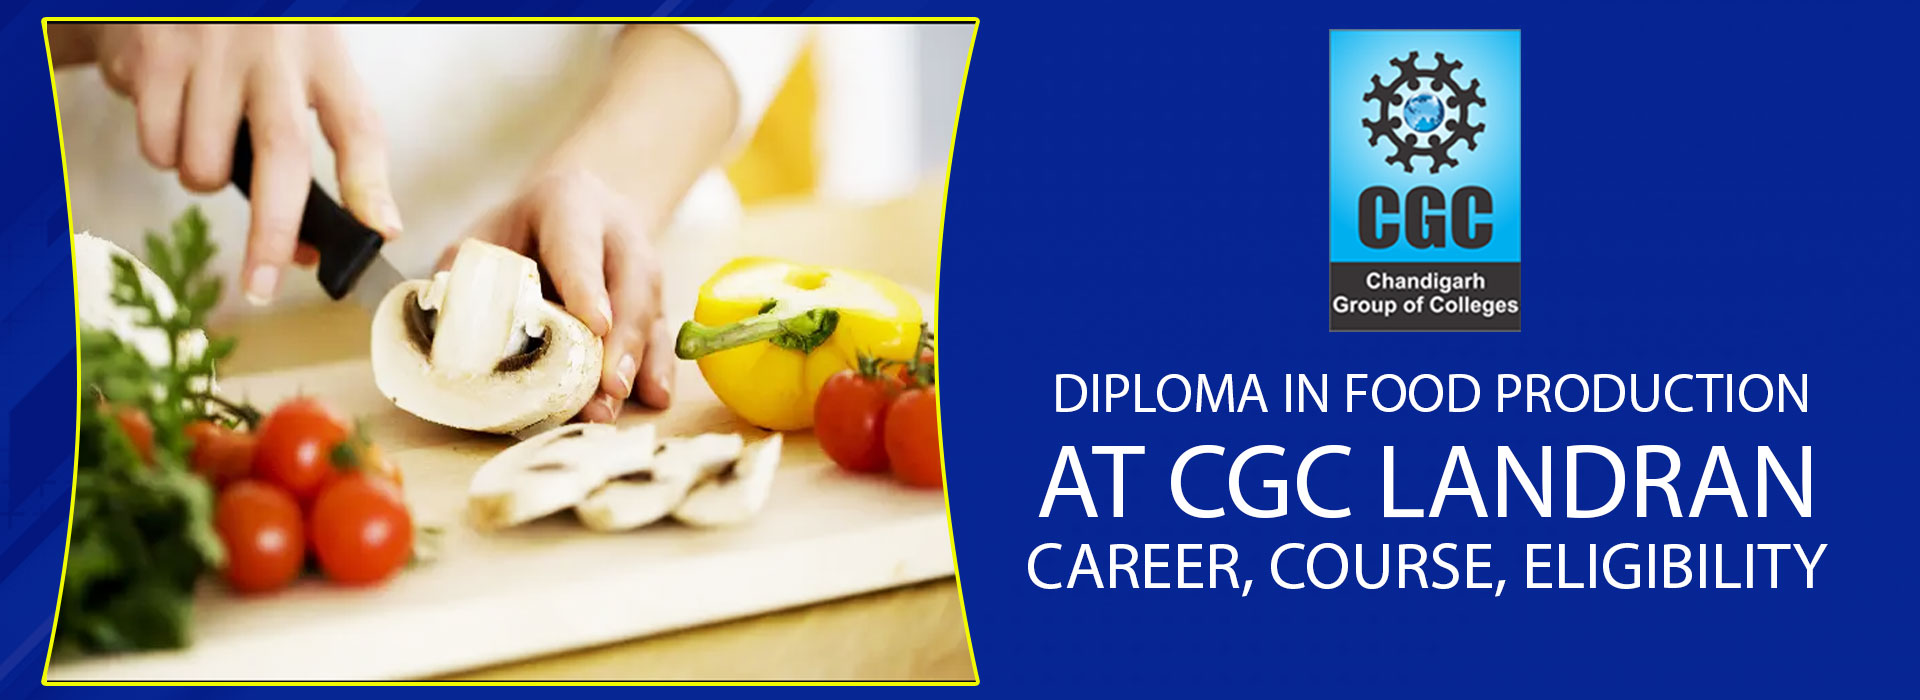 Diploma in Food Production at CGC Landran: Career, Course, Eligibility